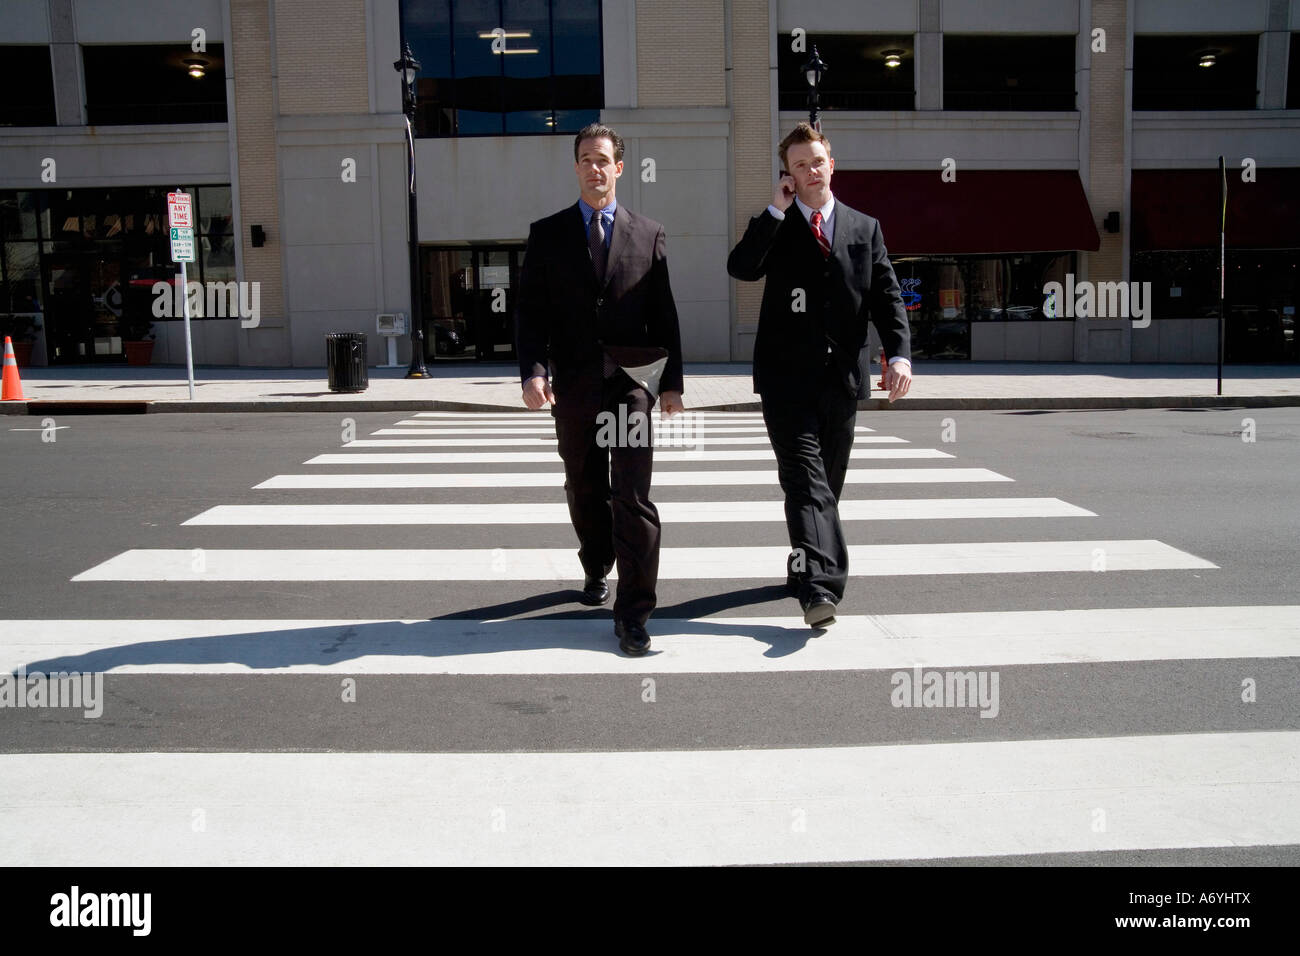 Two businessmen walking over a pedestrian crossing Stock Photo